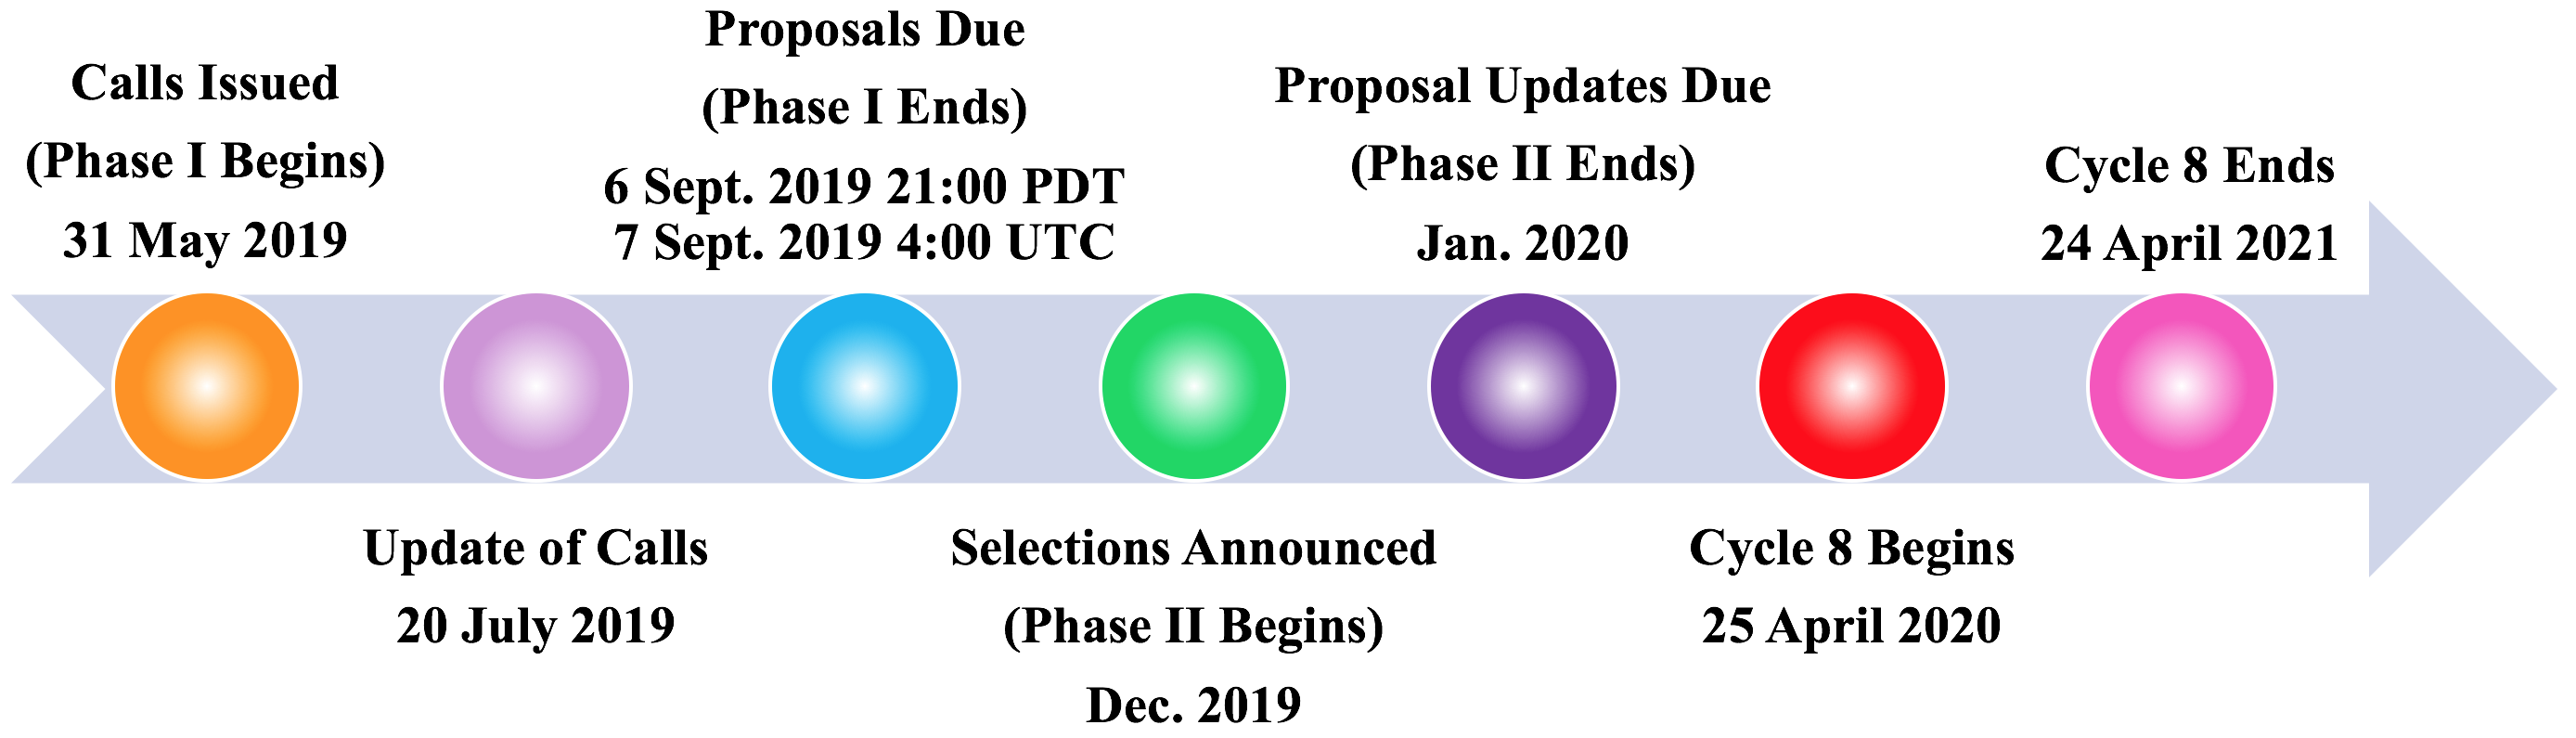 SOFIA Cycle 8 Call for Proposals timeline